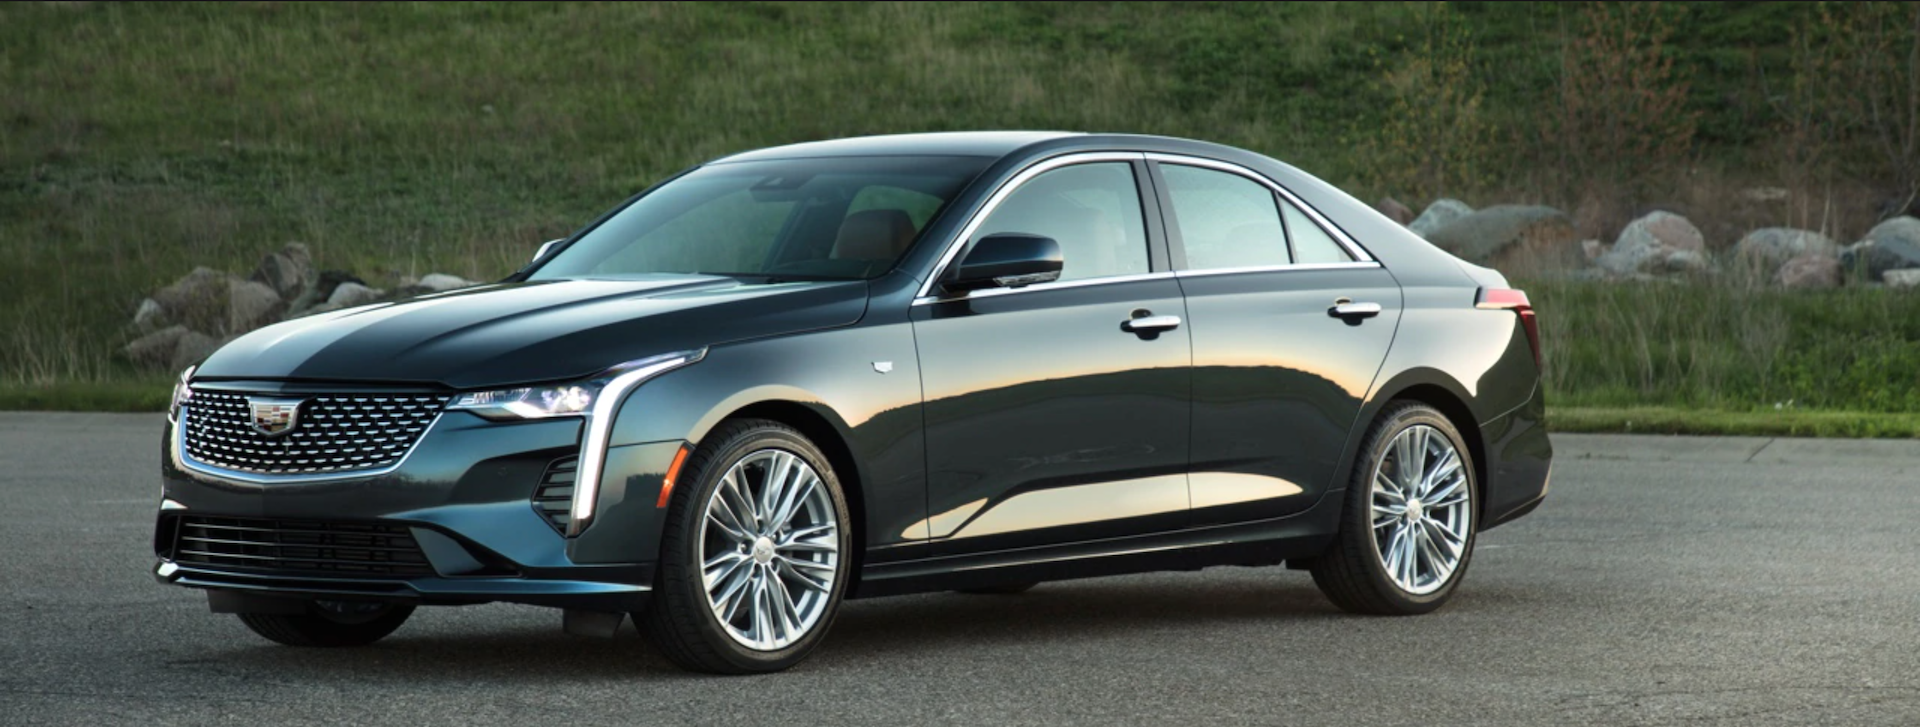 Test drive the brand new 2020 Cadillac CT4